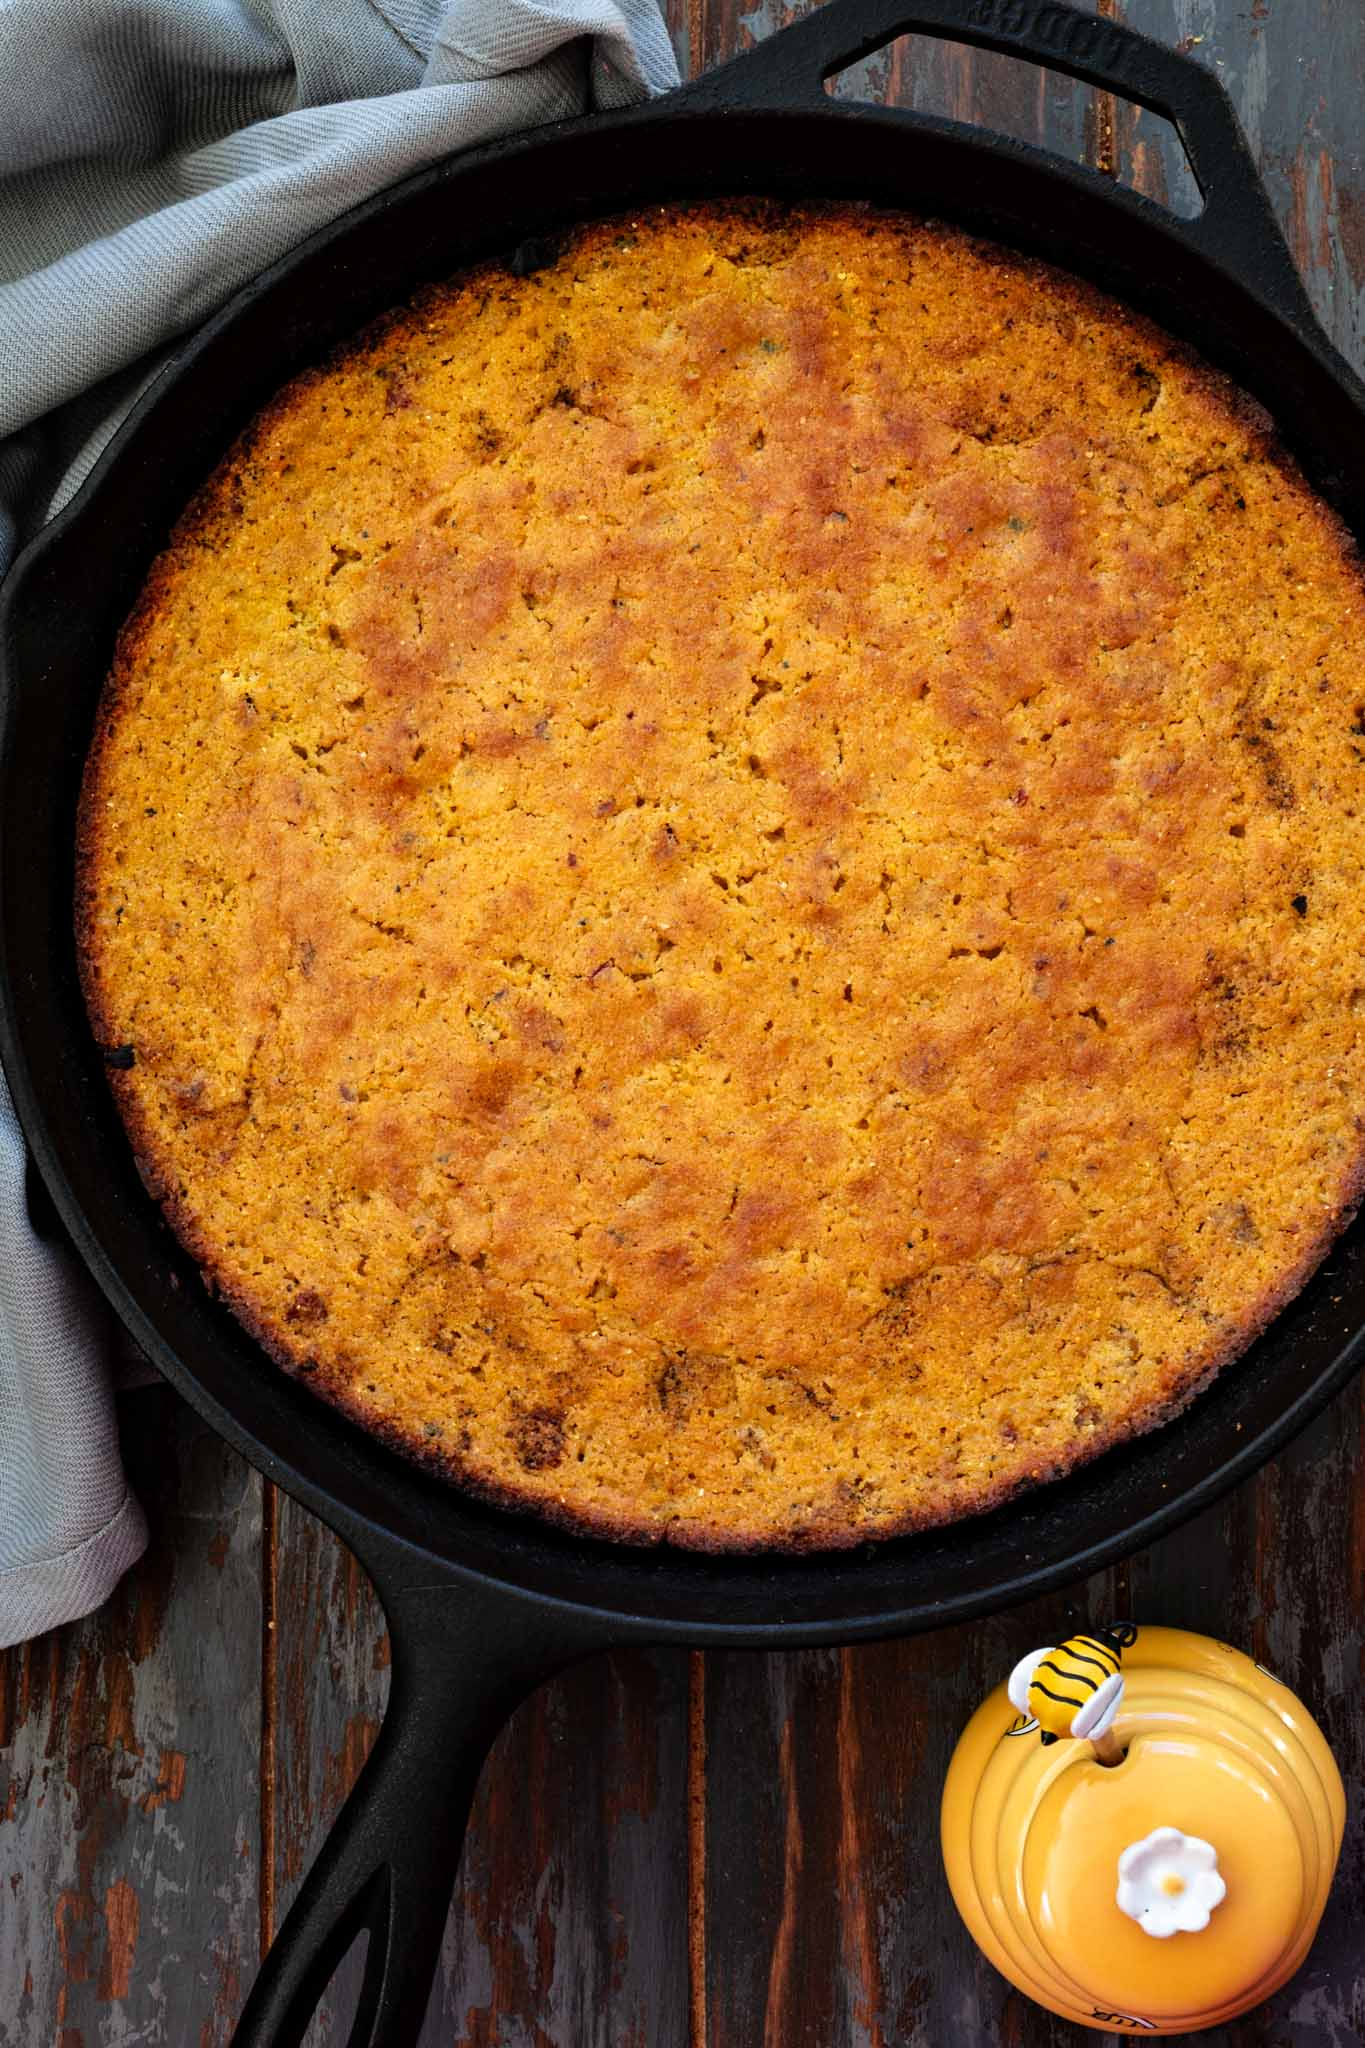 Cornbread made in a cast iron skillet